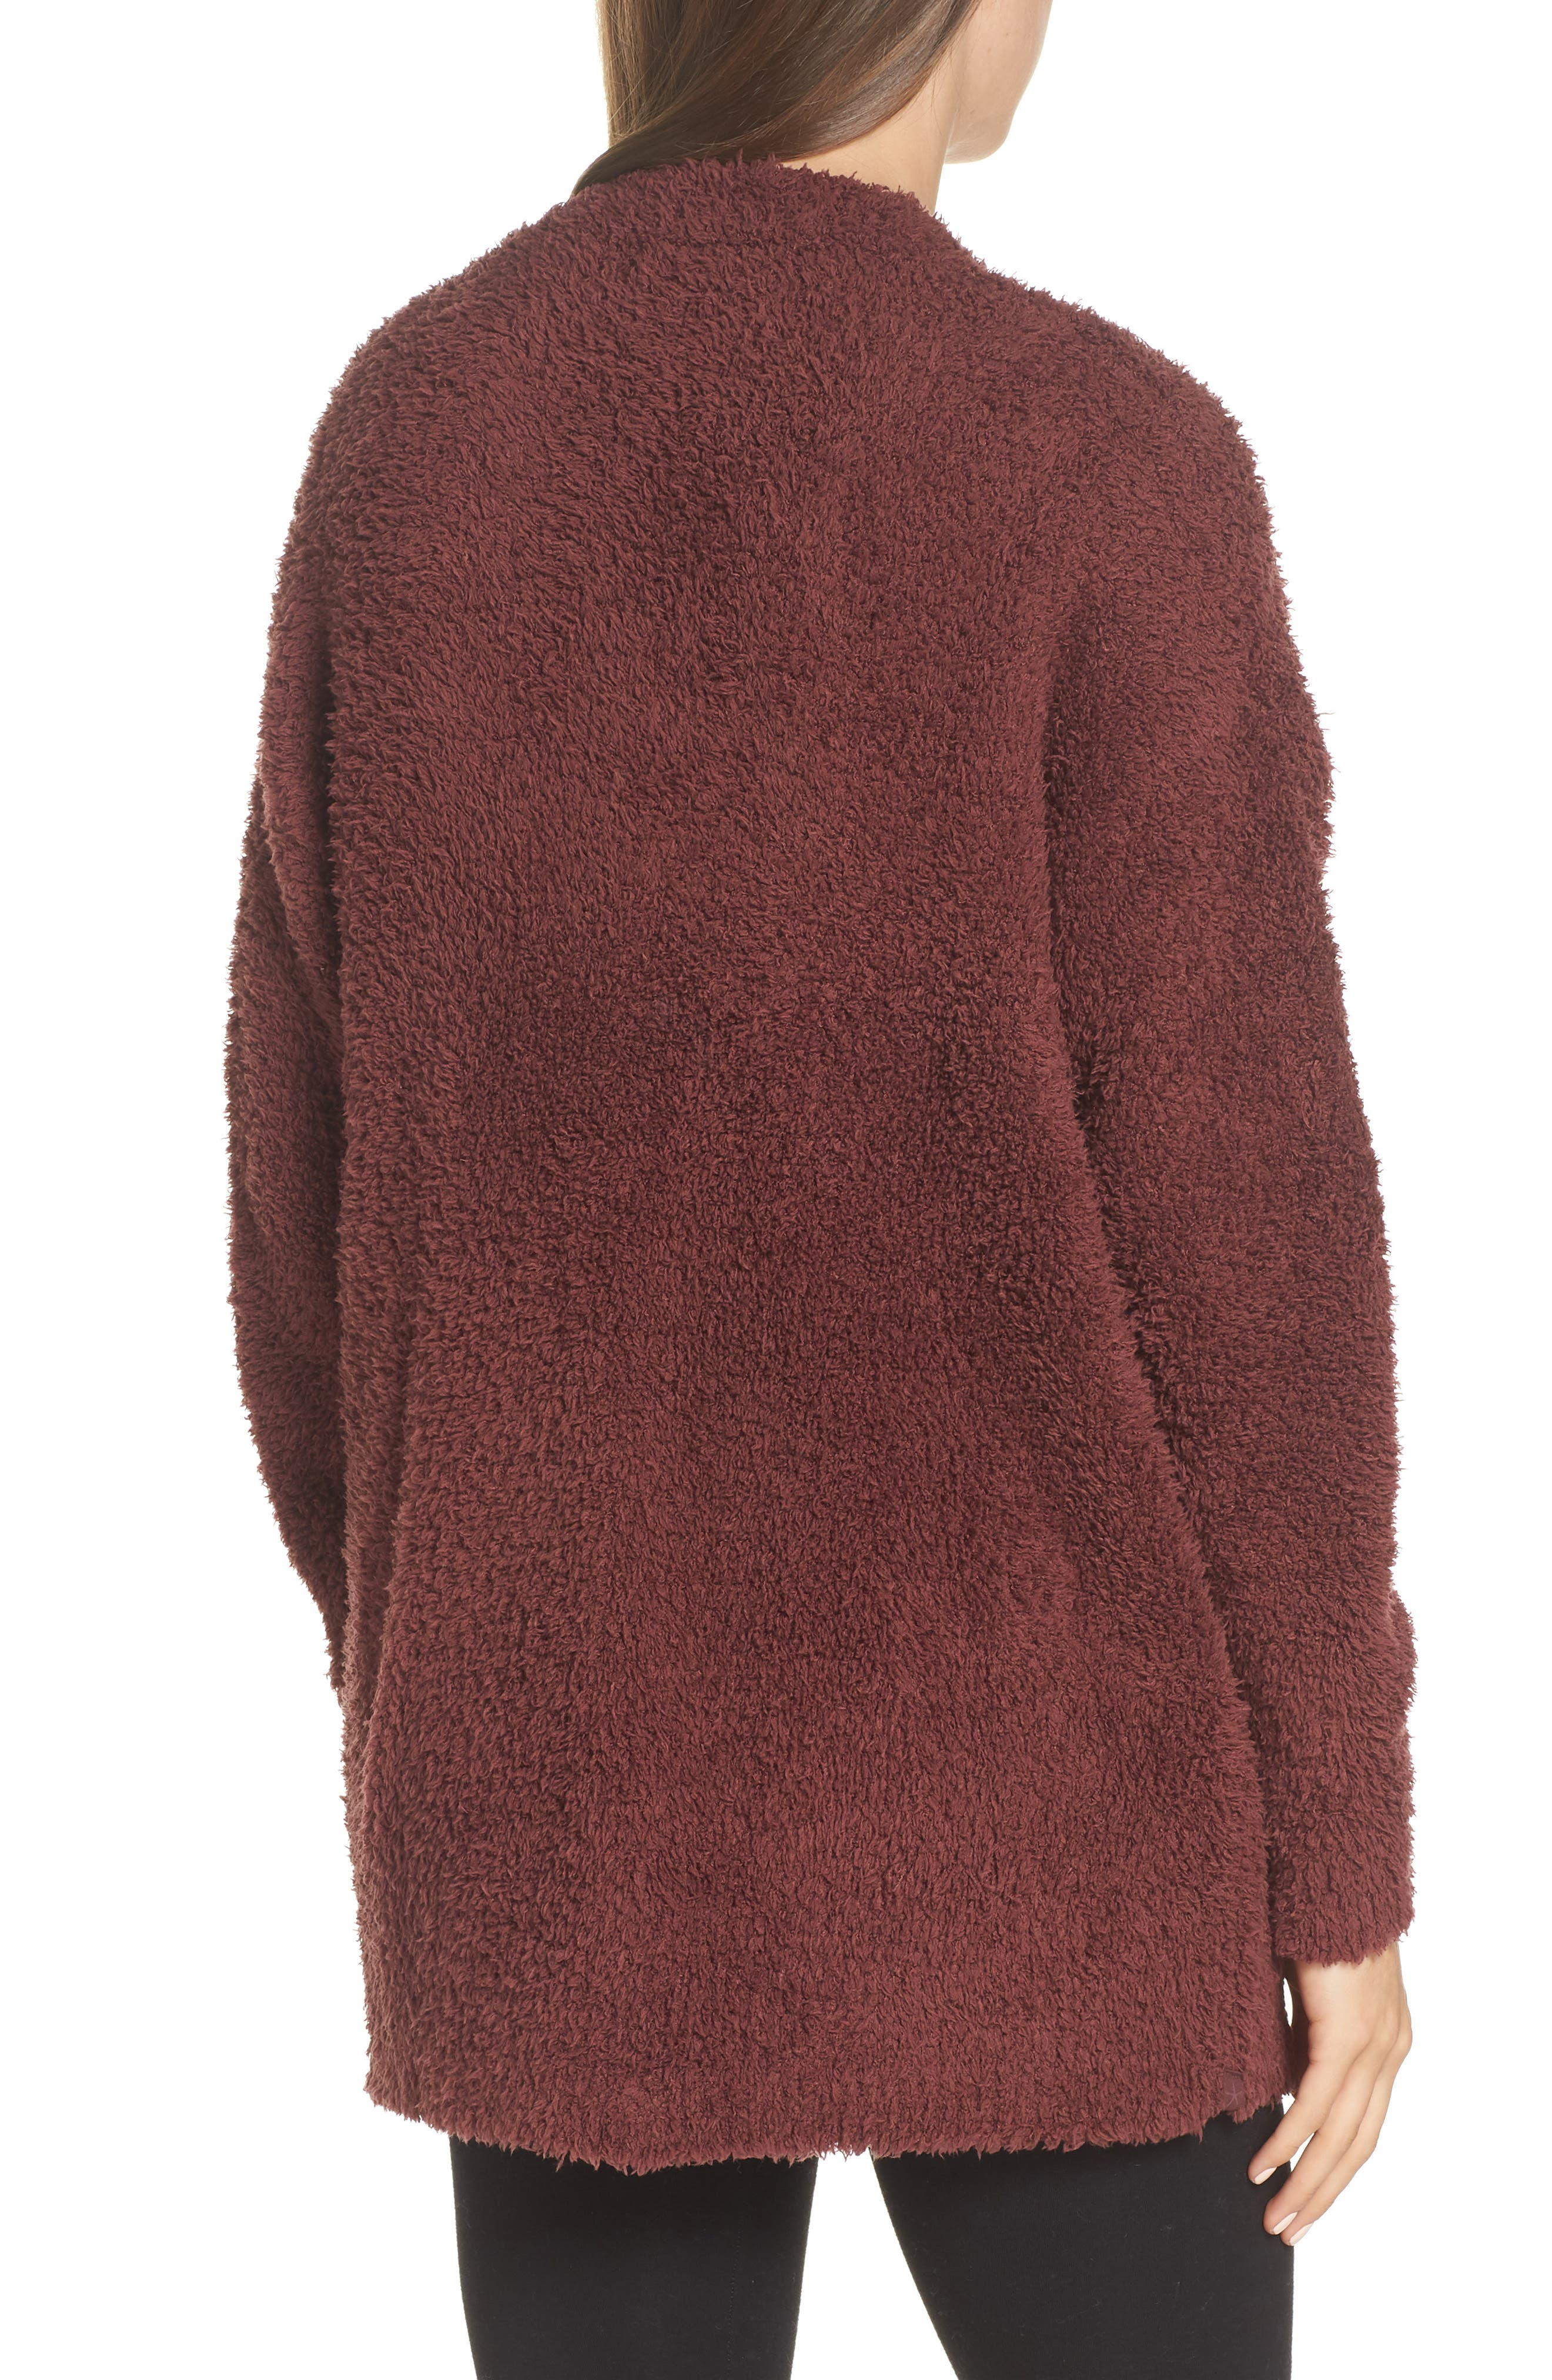 CozyChic<sup>®</sup> Cardigan,                             Alternate thumbnail 2, color,                             ROSEWOOD